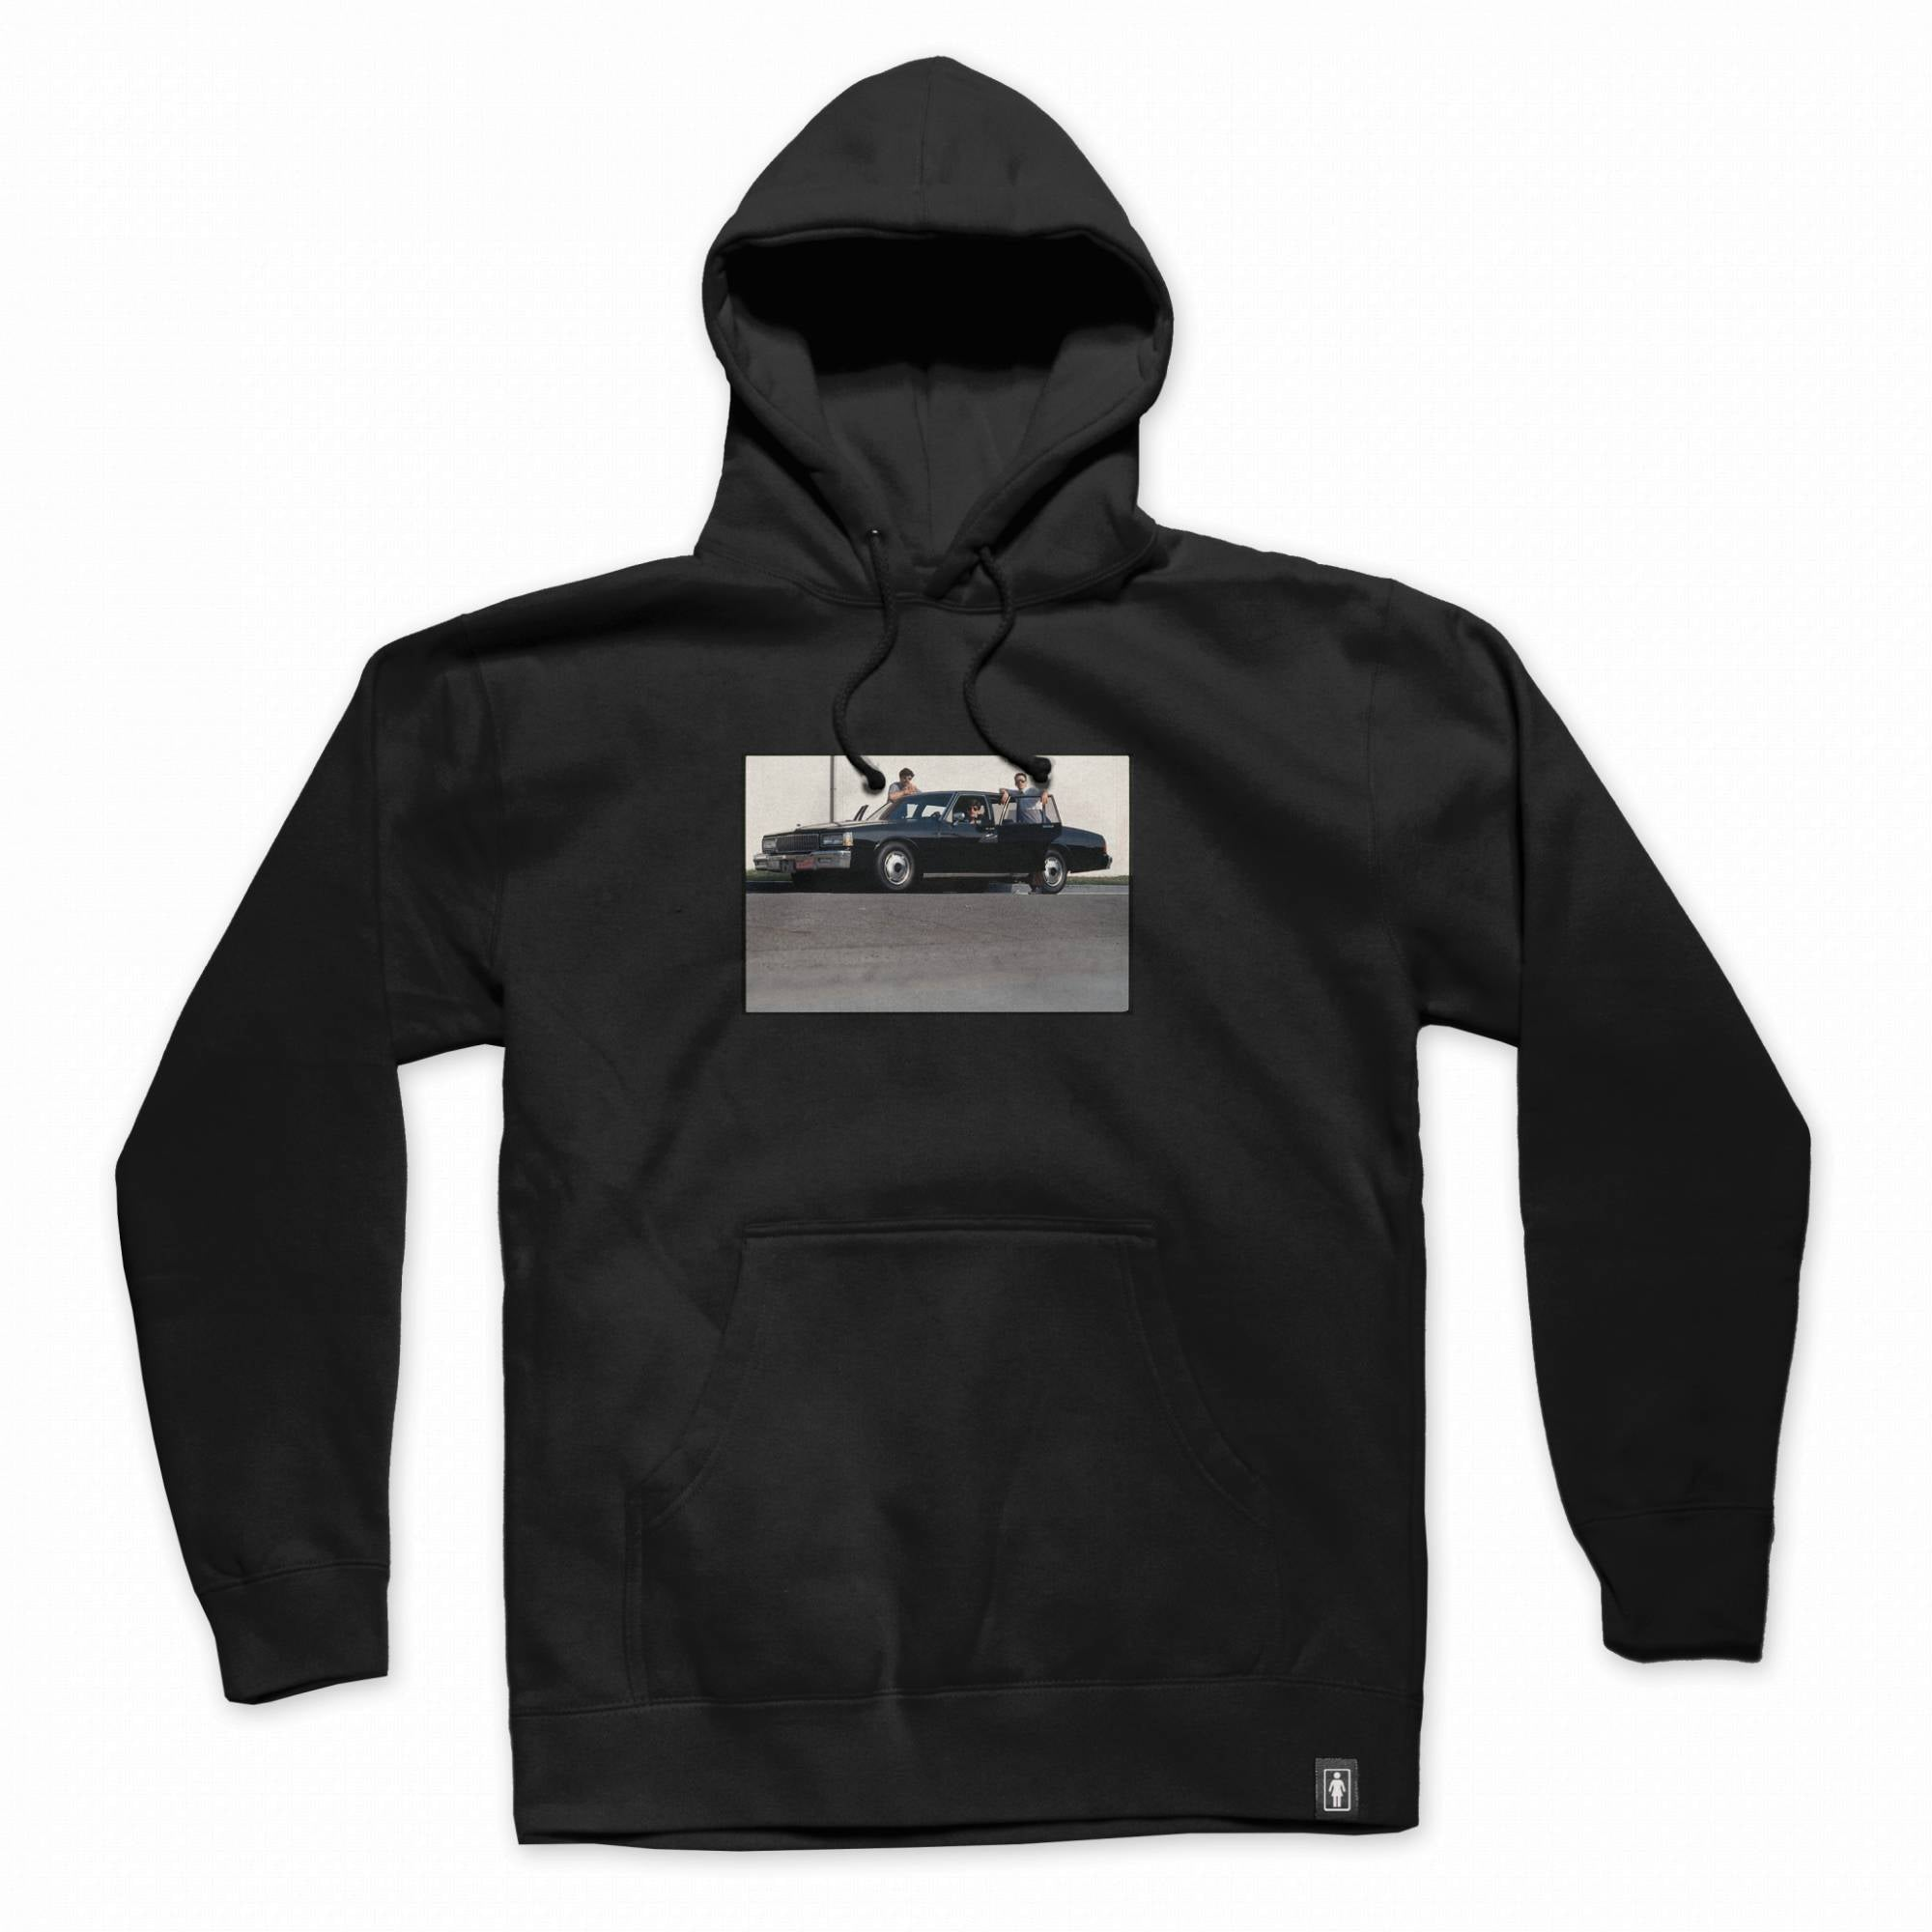 Girl x Spike Jonze x Beastie Boys Pullover - Black